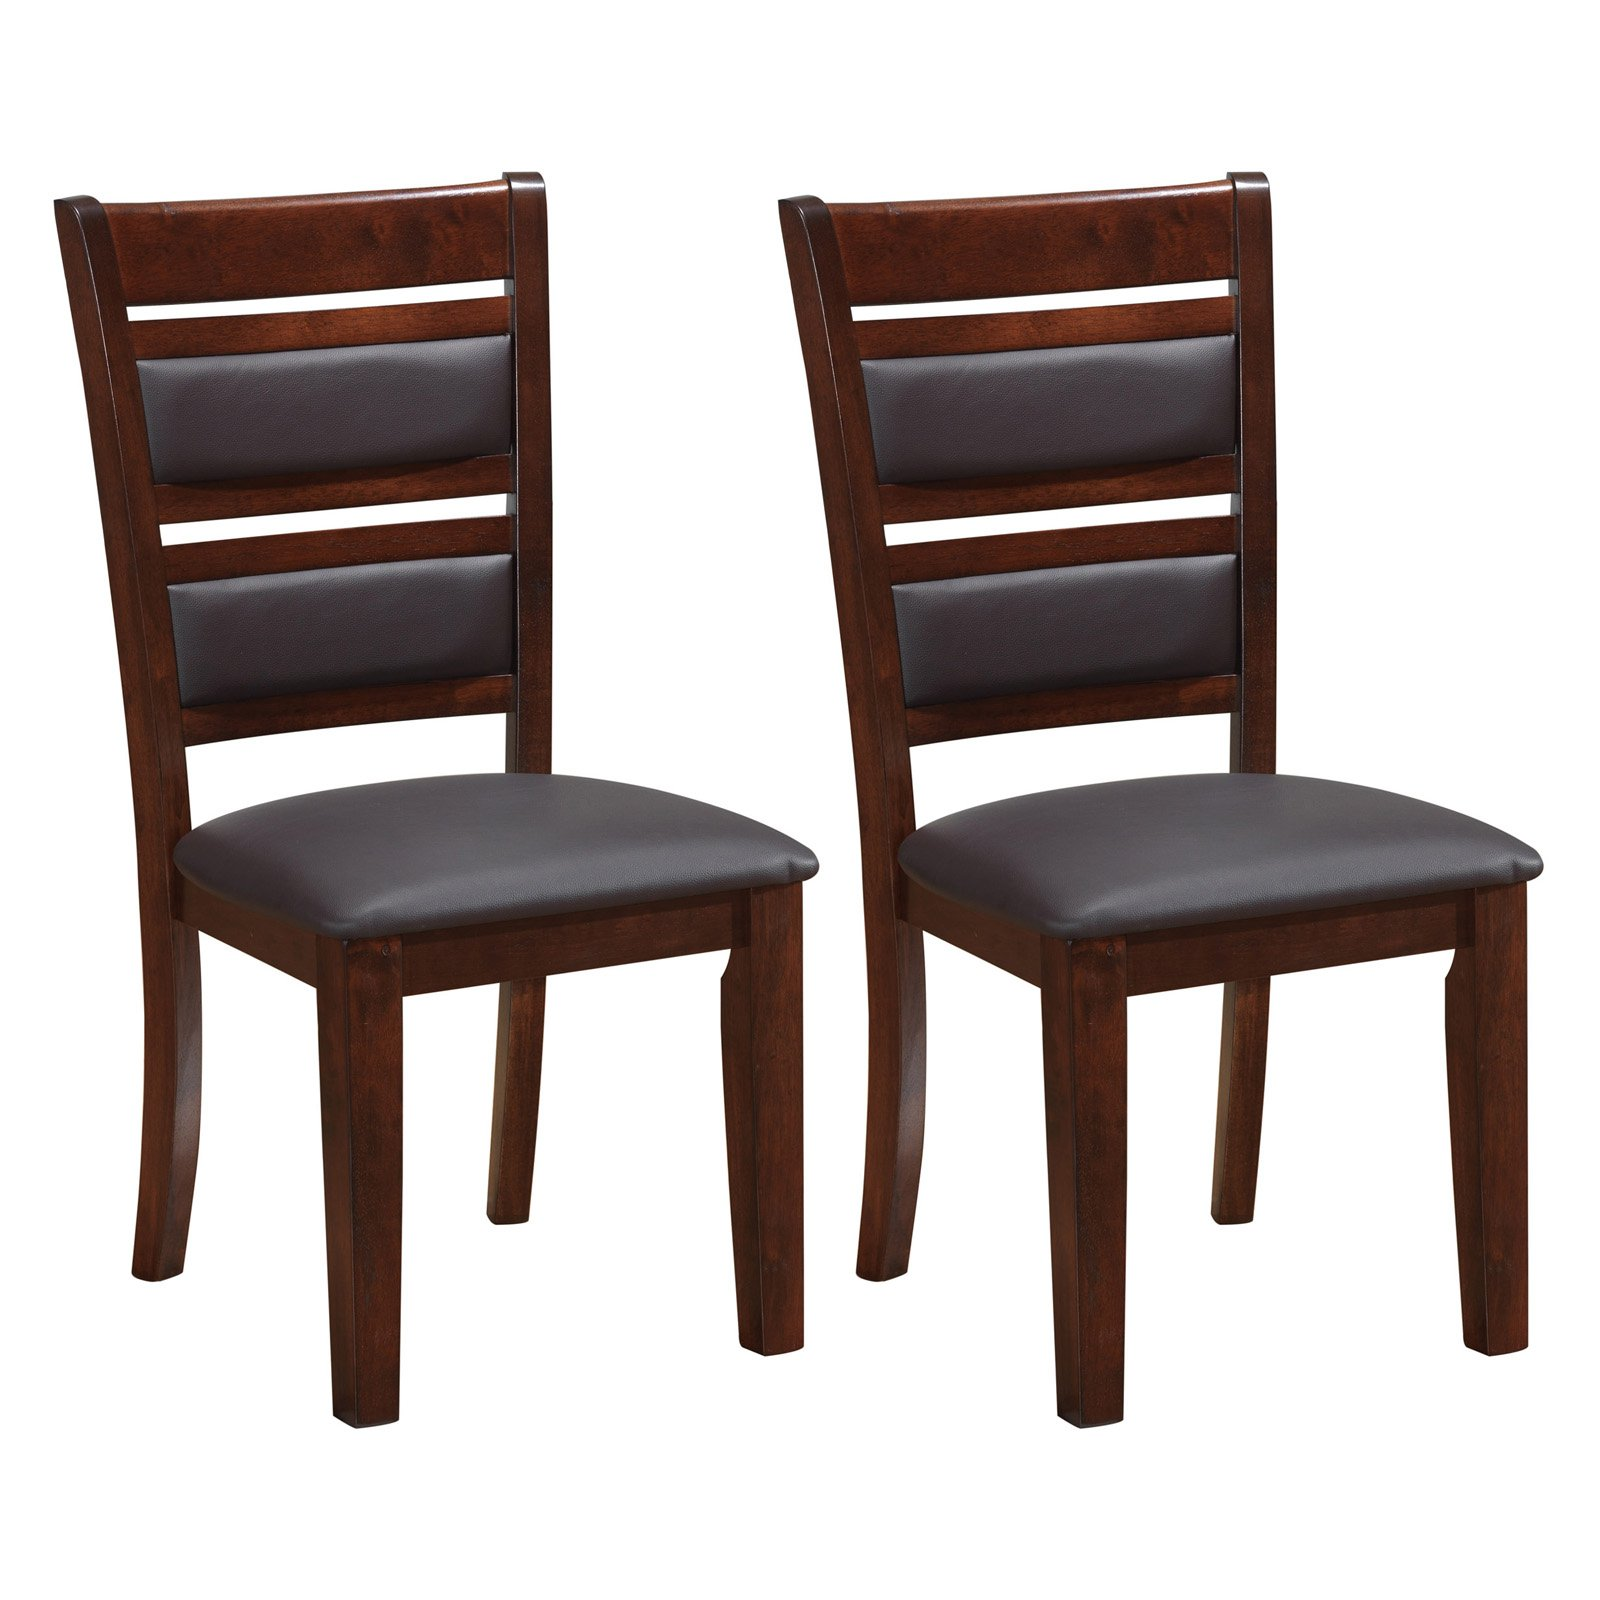 CorLiving Chocolate Brown Bonded Leather Dining Chairs, Set of 2